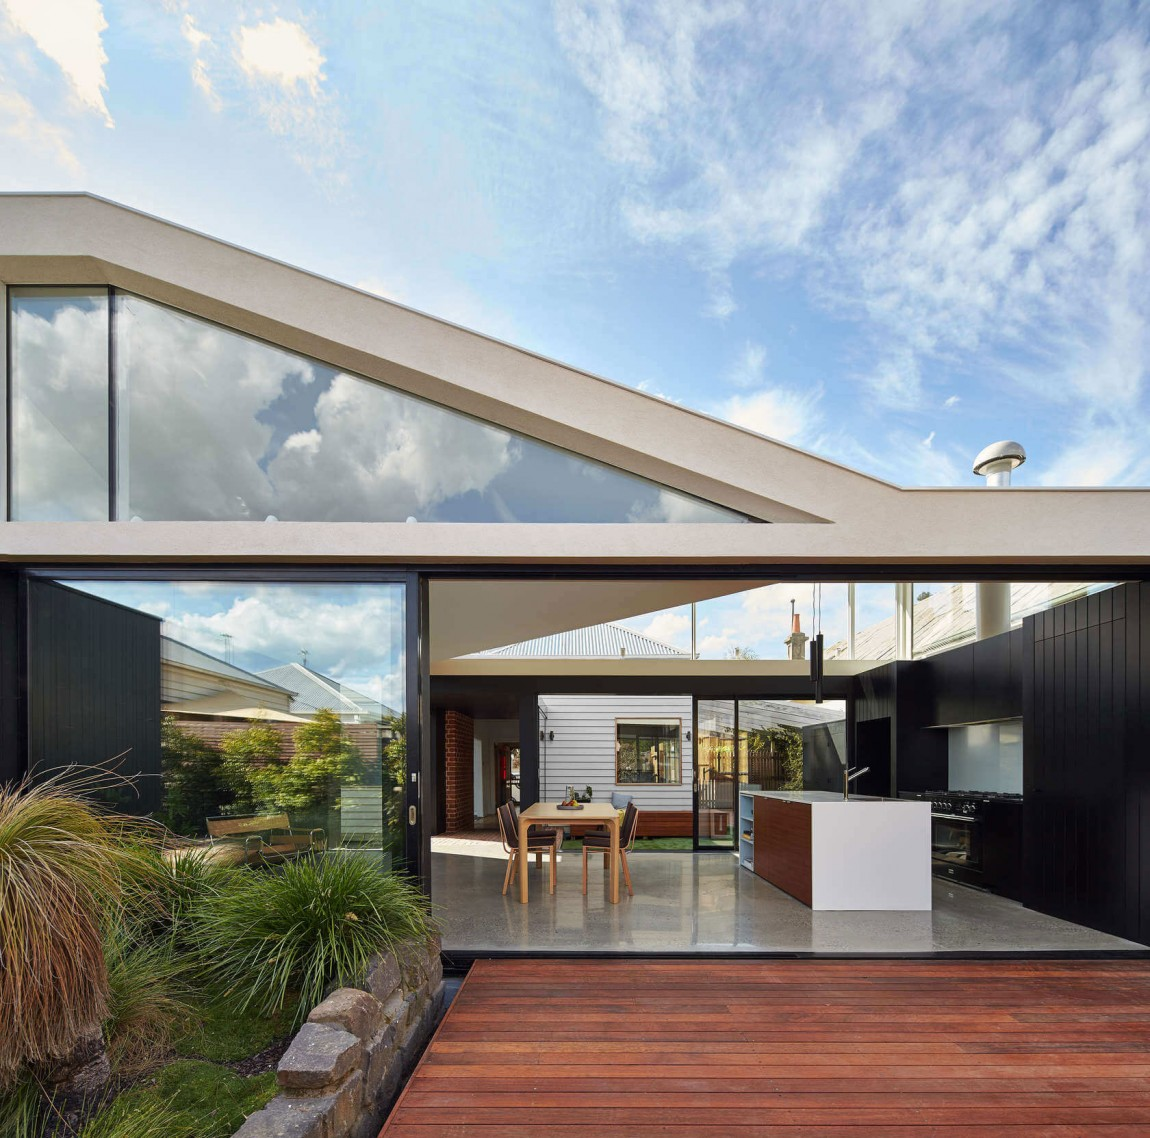 Modern addition adds a cool courtyard and stylish living space to Aussie home